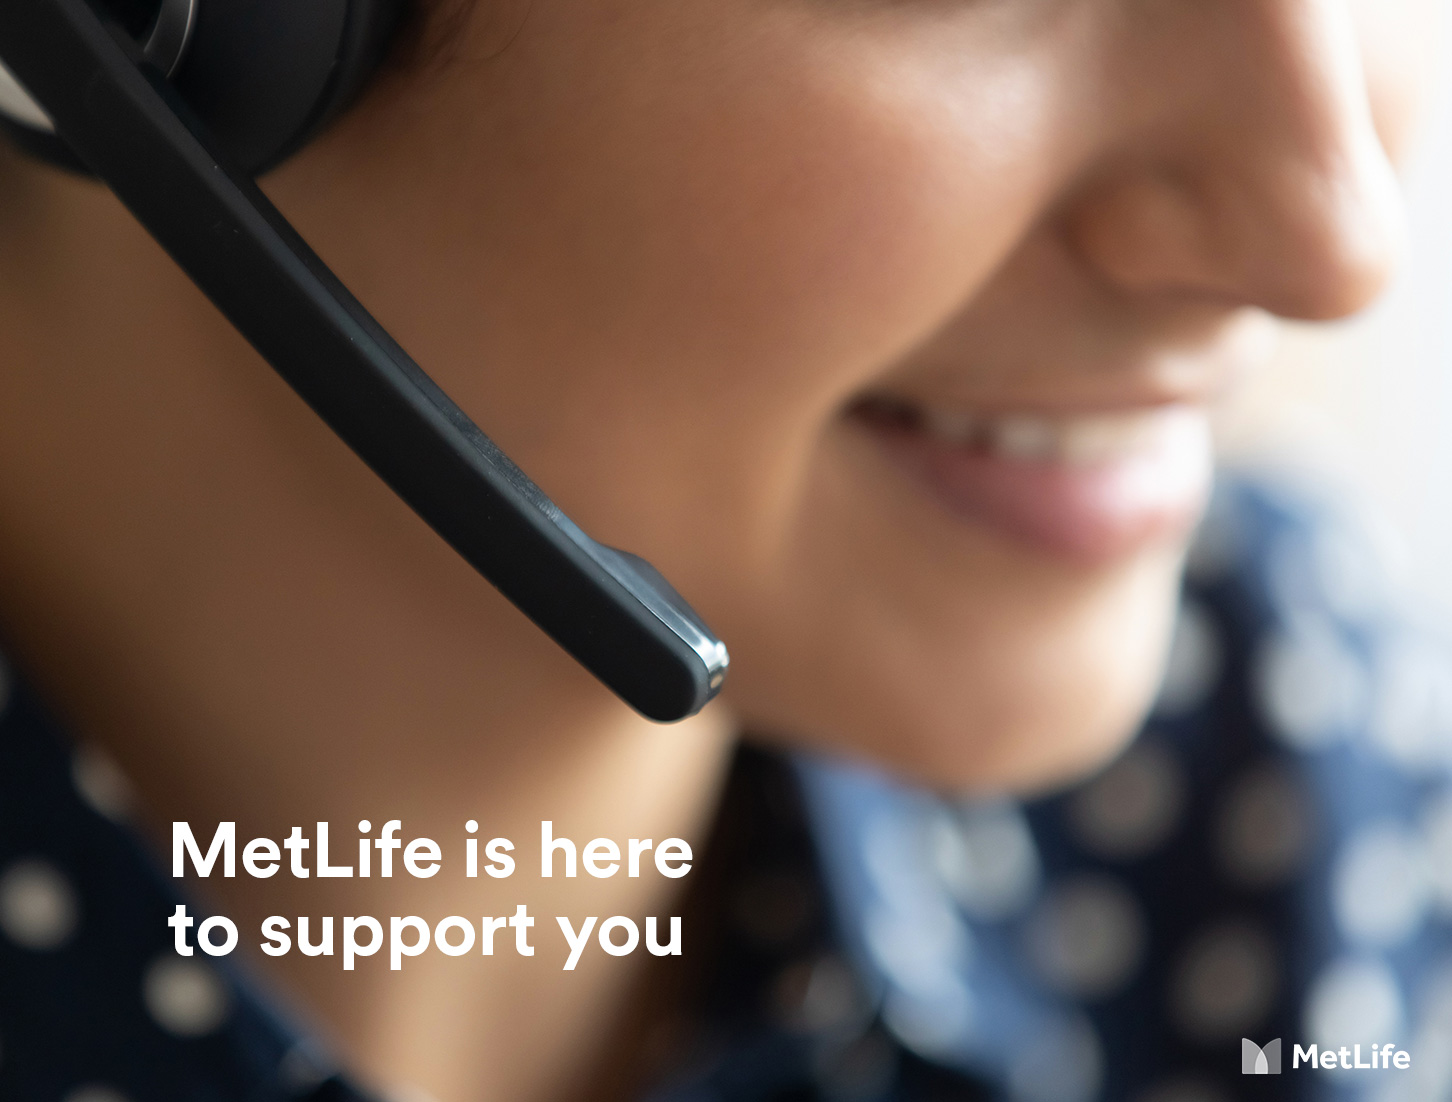 MetLife is here to support you